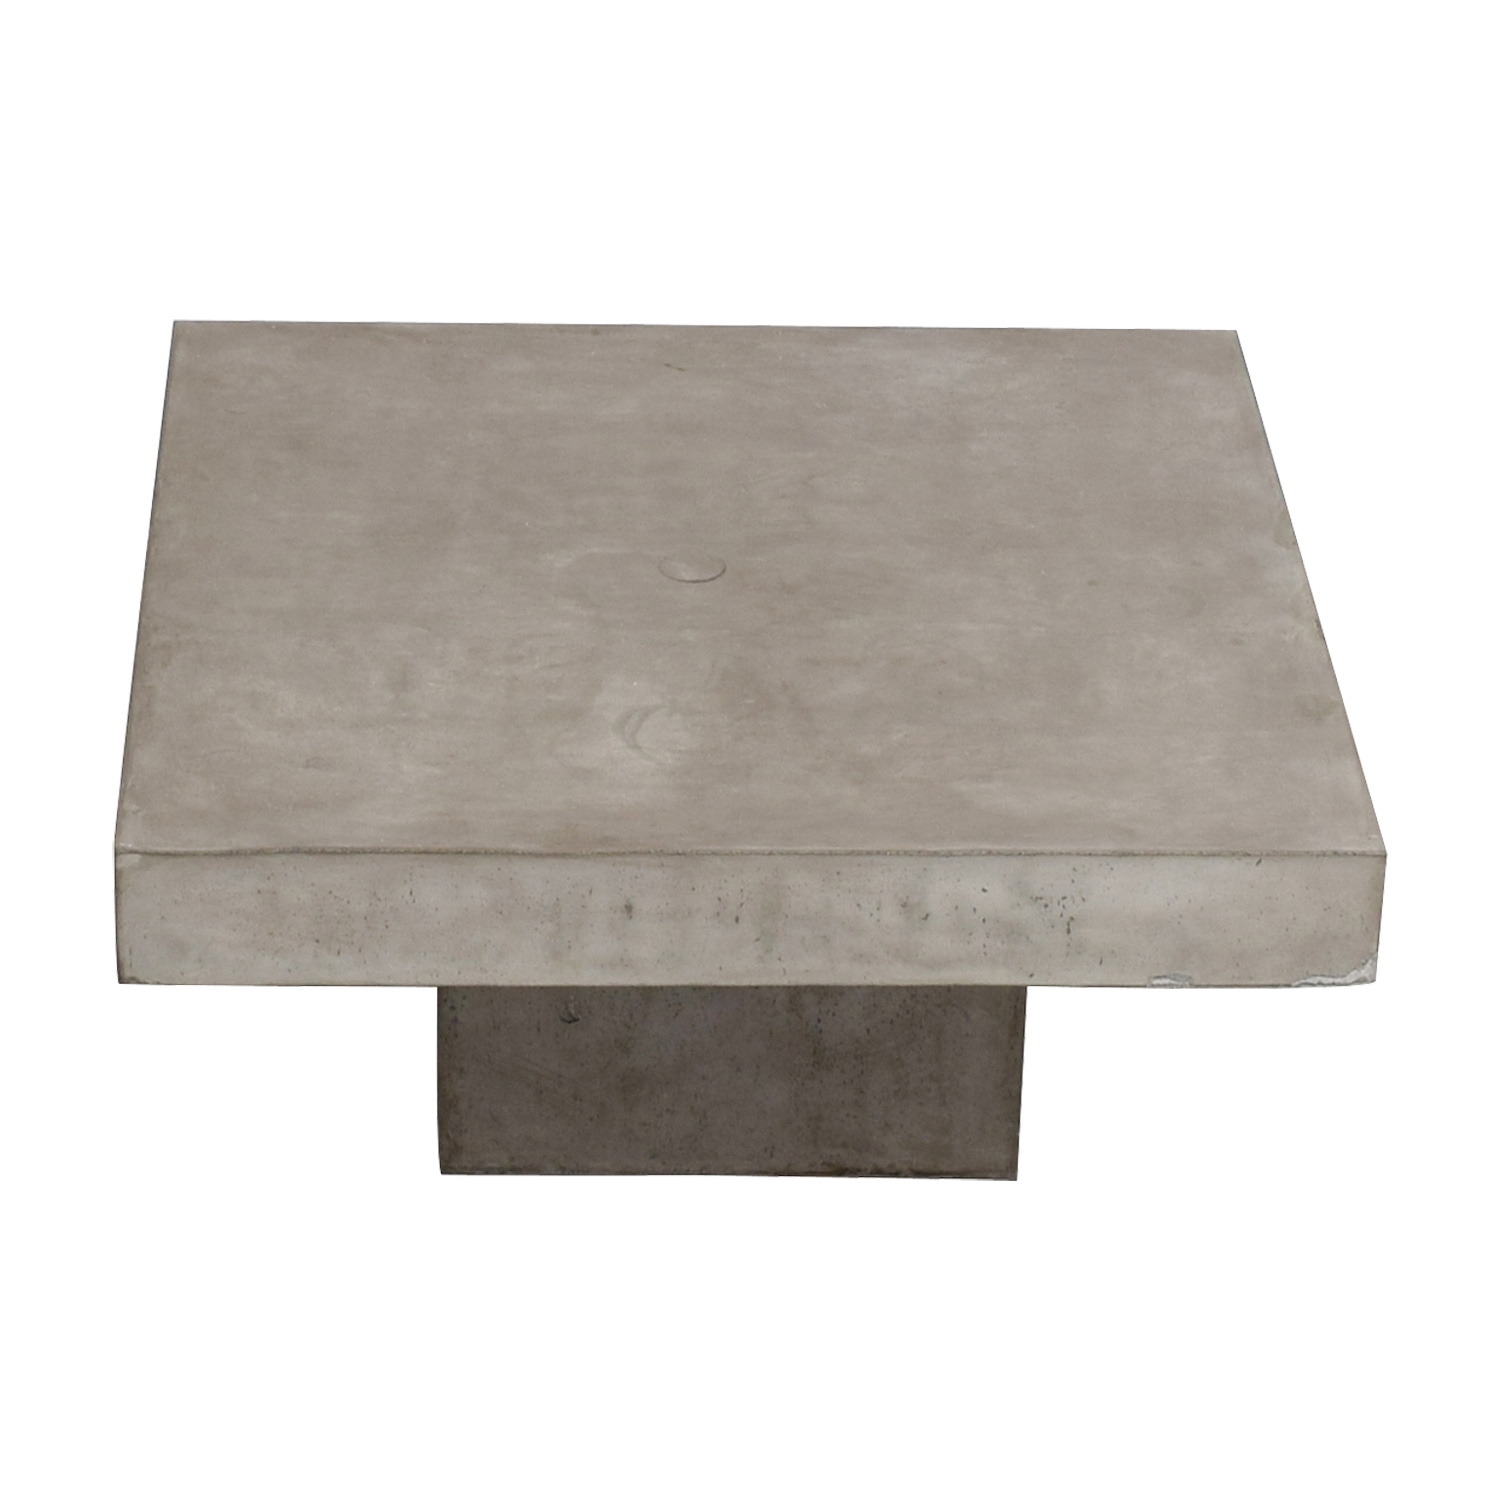 Cb2 Coffee Table.43 Off Cb2 Cb2 Concrete Coffee Table Tables